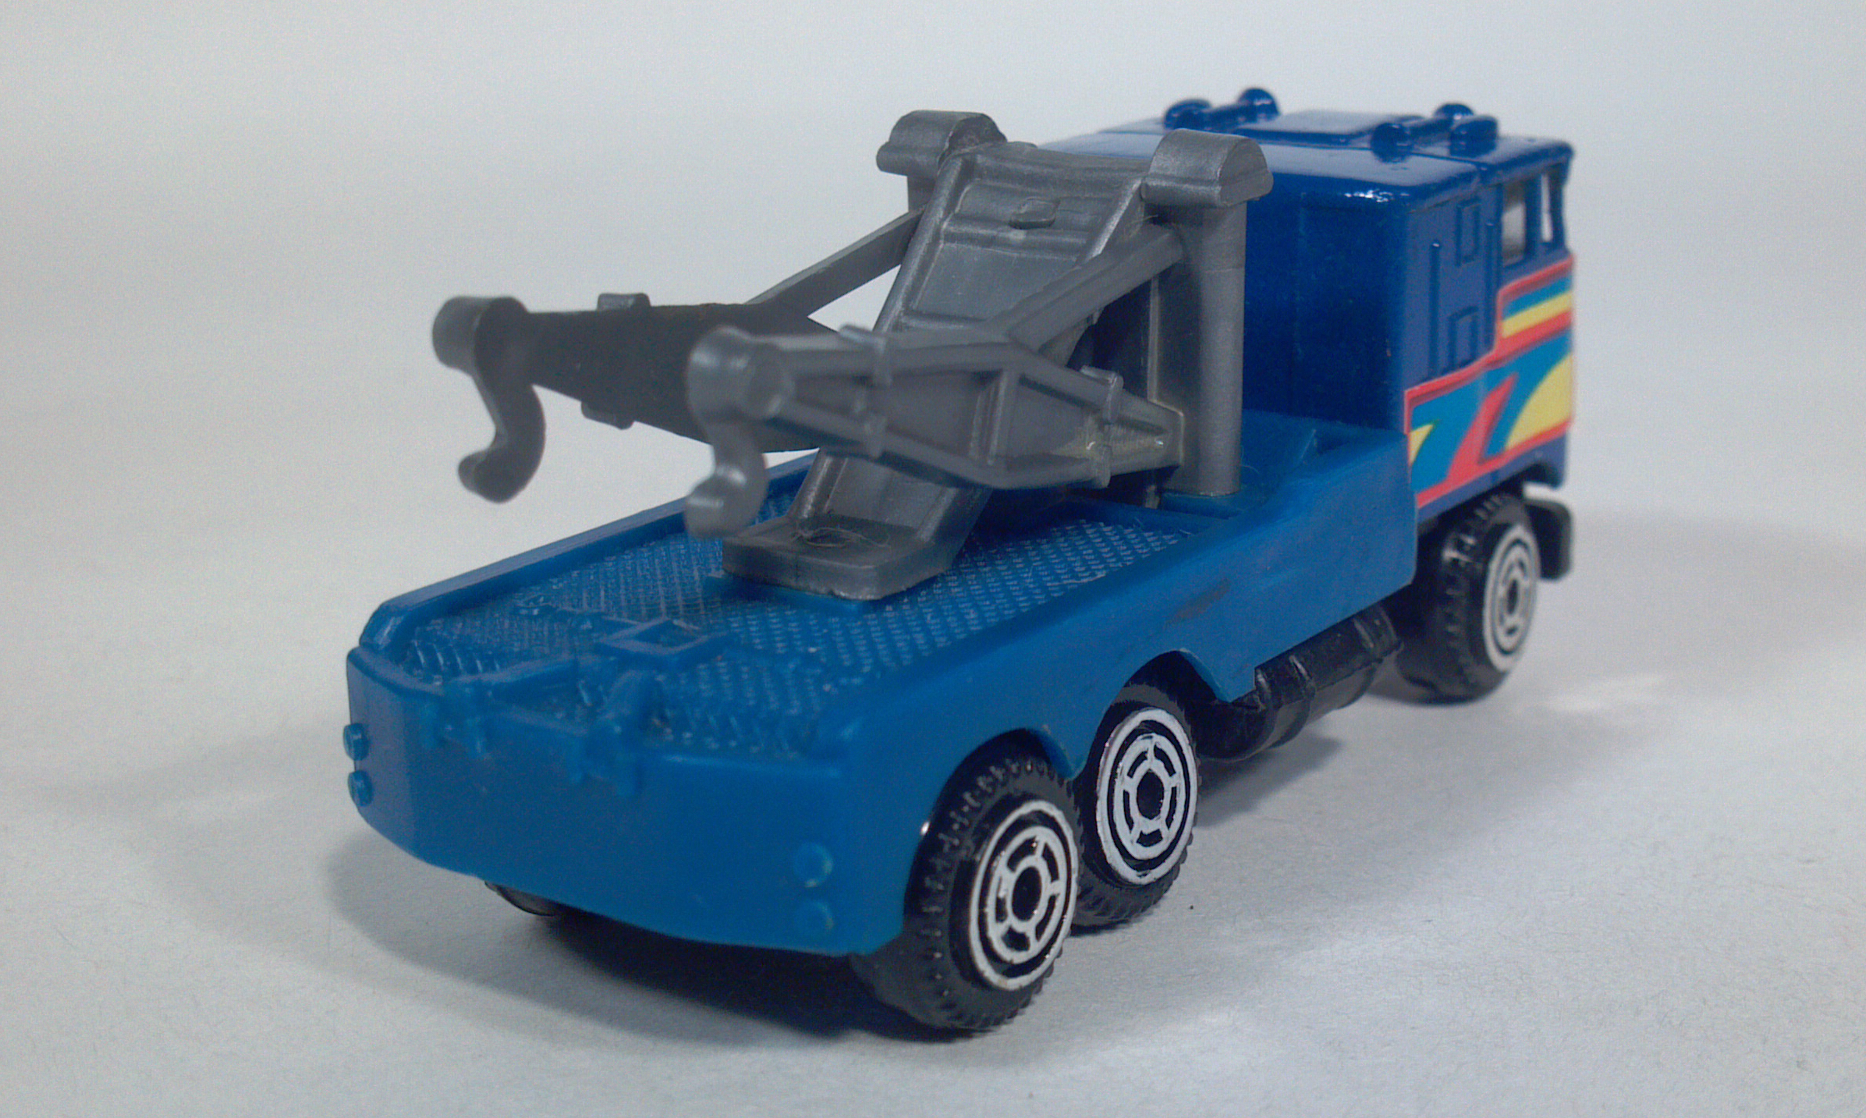 Toy Tow Truck Model 55